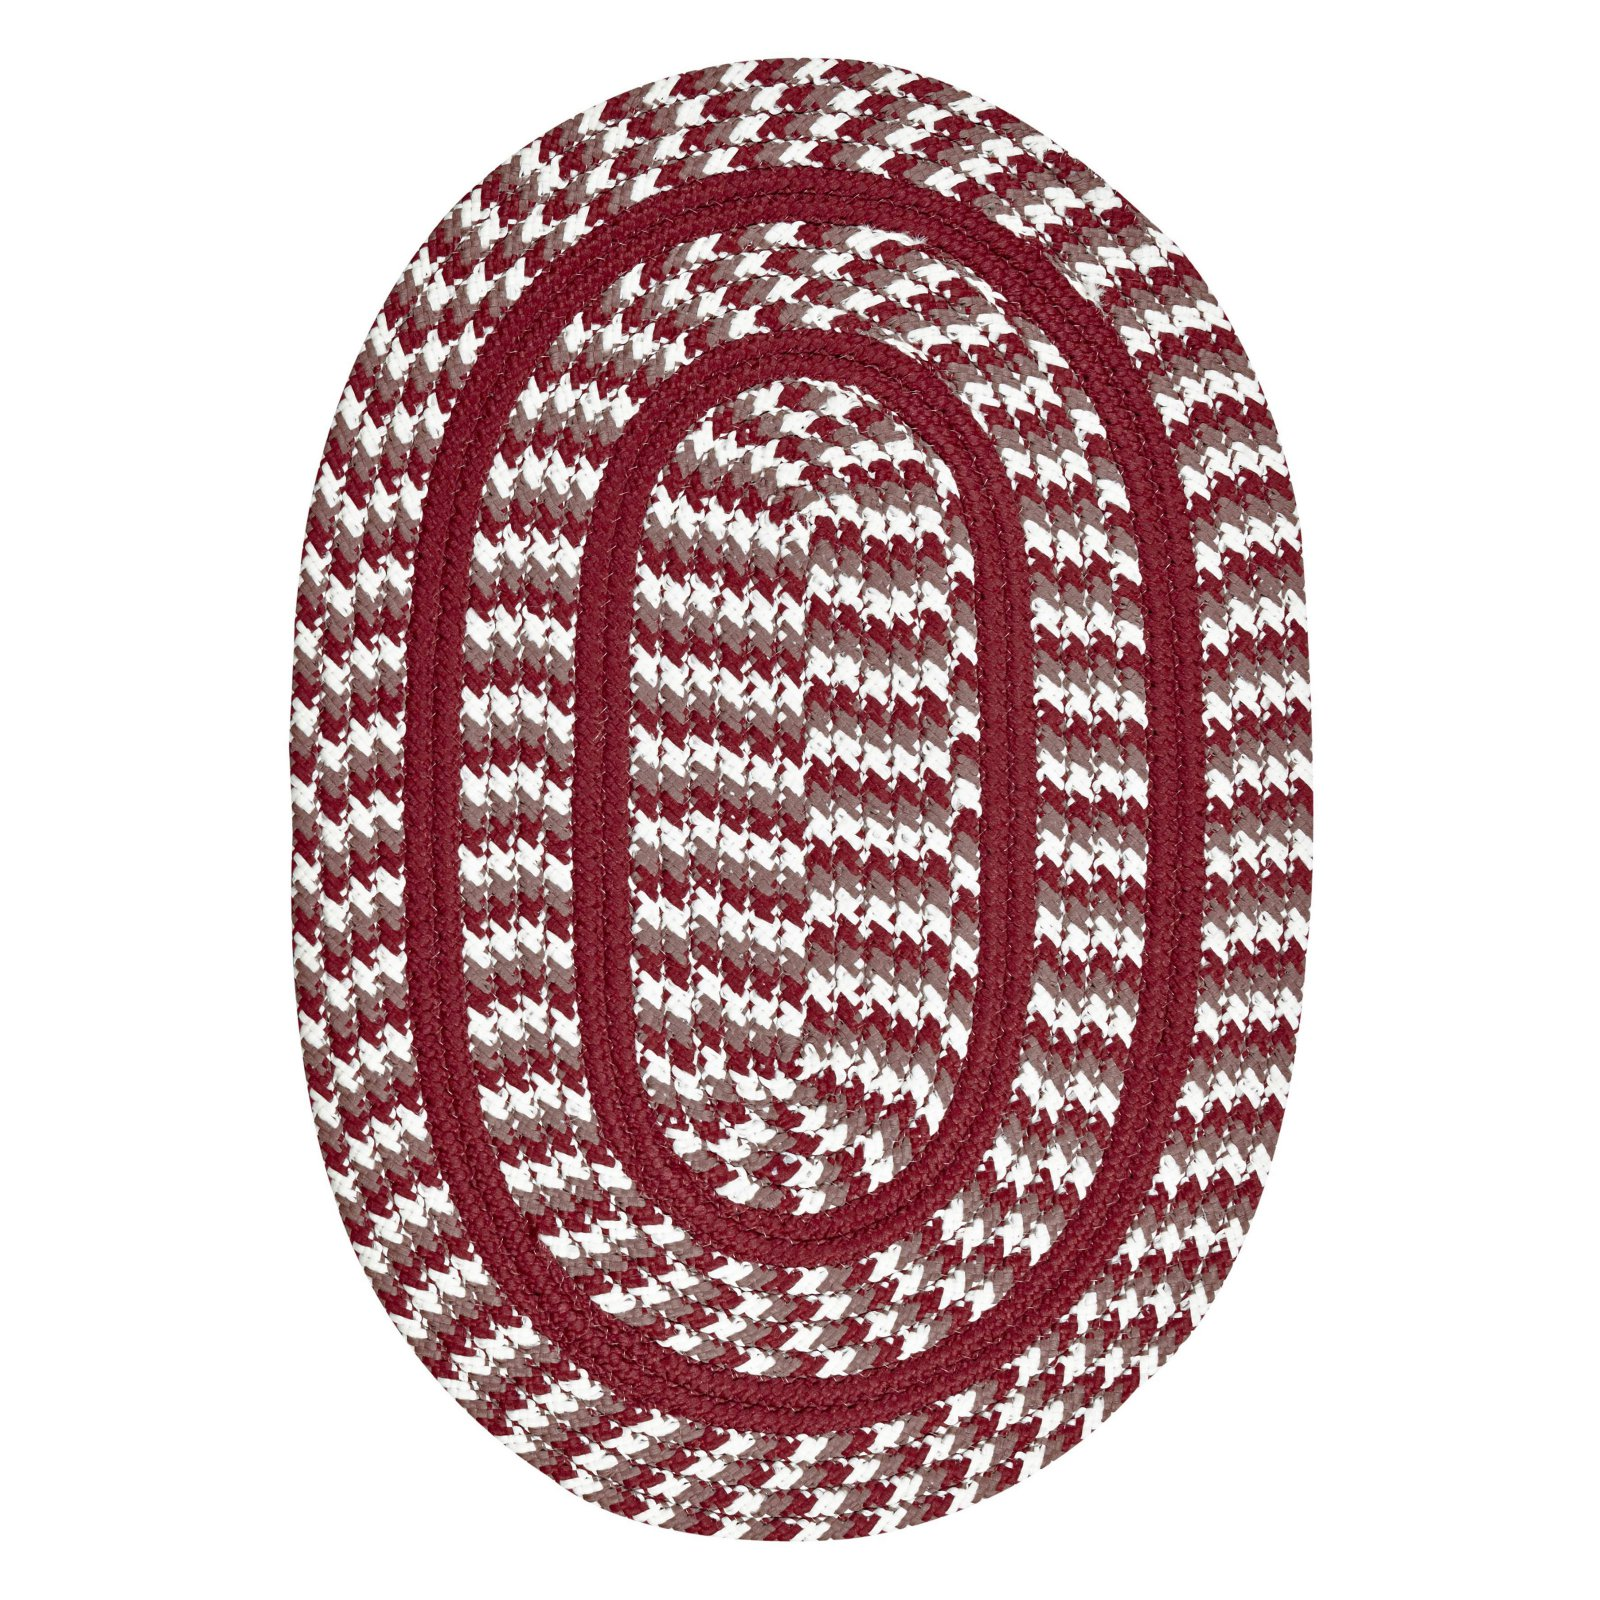 Crescent Braided Rug 7-Piece Set with Room Size Rug and Accessories, Burgundy by Pam Overseas LLC